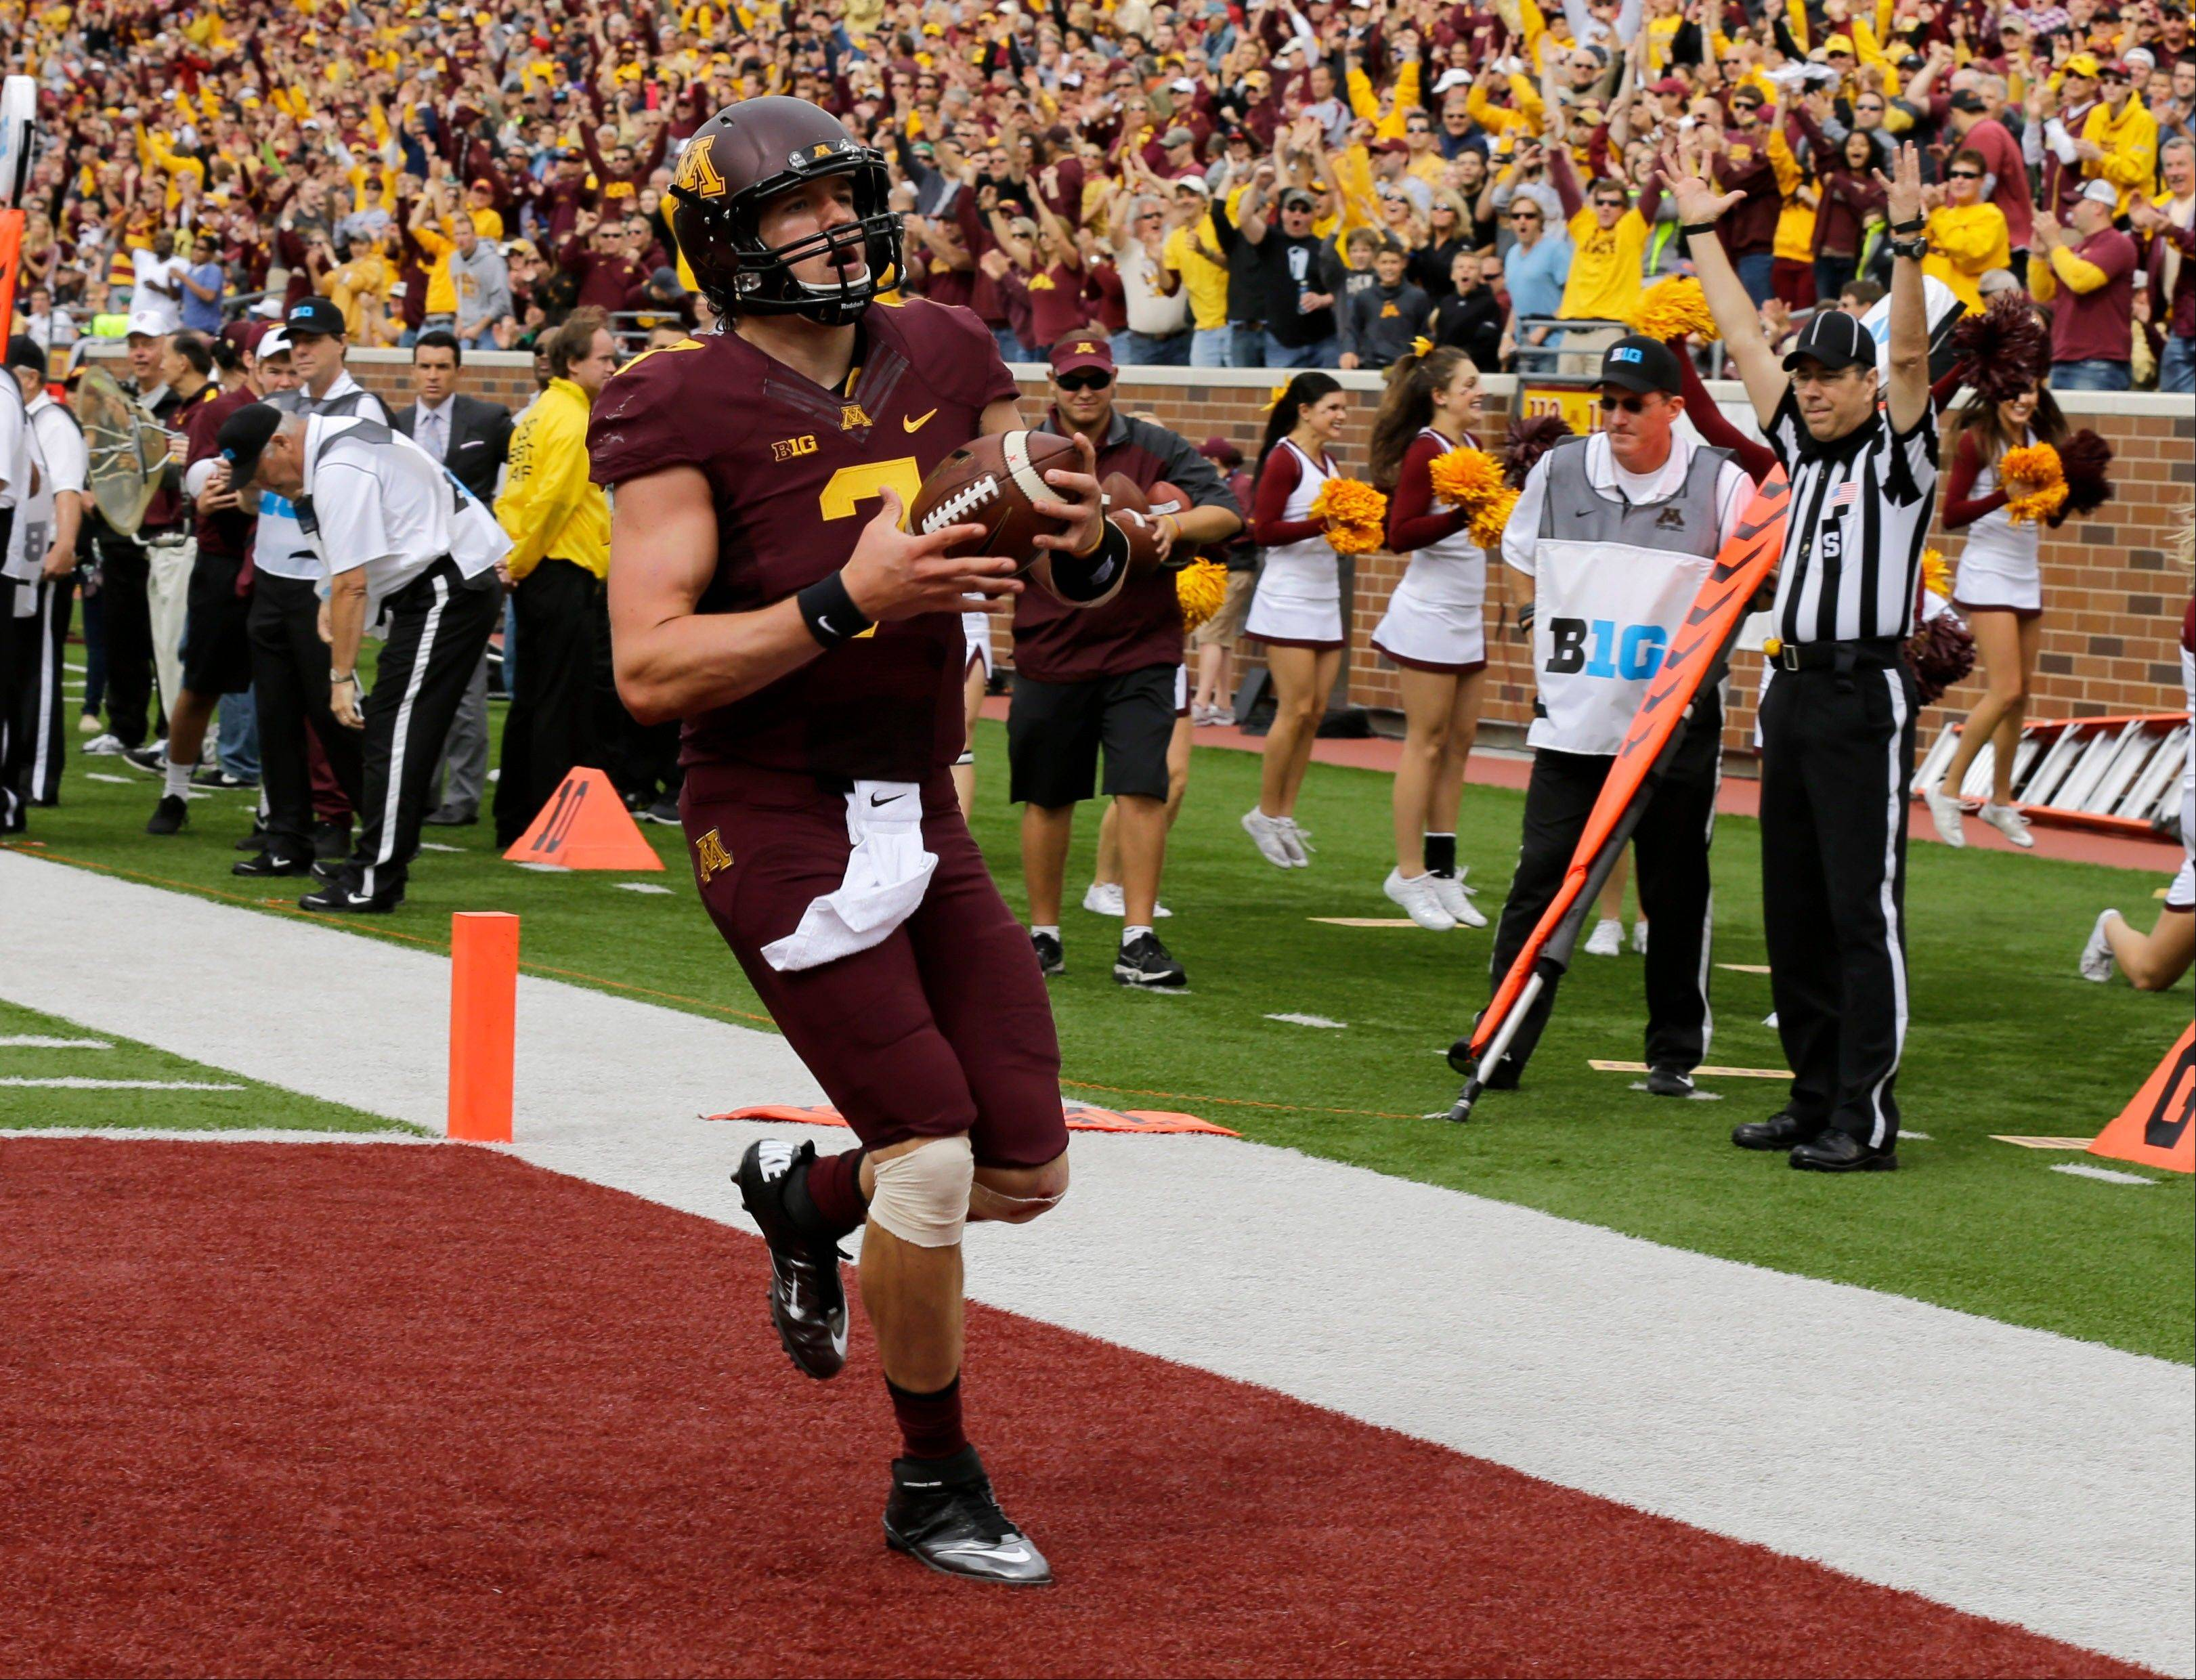 Minnesota quarterback Mitch Leidner (7) carries the ball into the end zone for a touchdown during the first quarter of an NCAA college football game against San Jose State in Minneapolis, Saturday, Sept. 21, 2013.